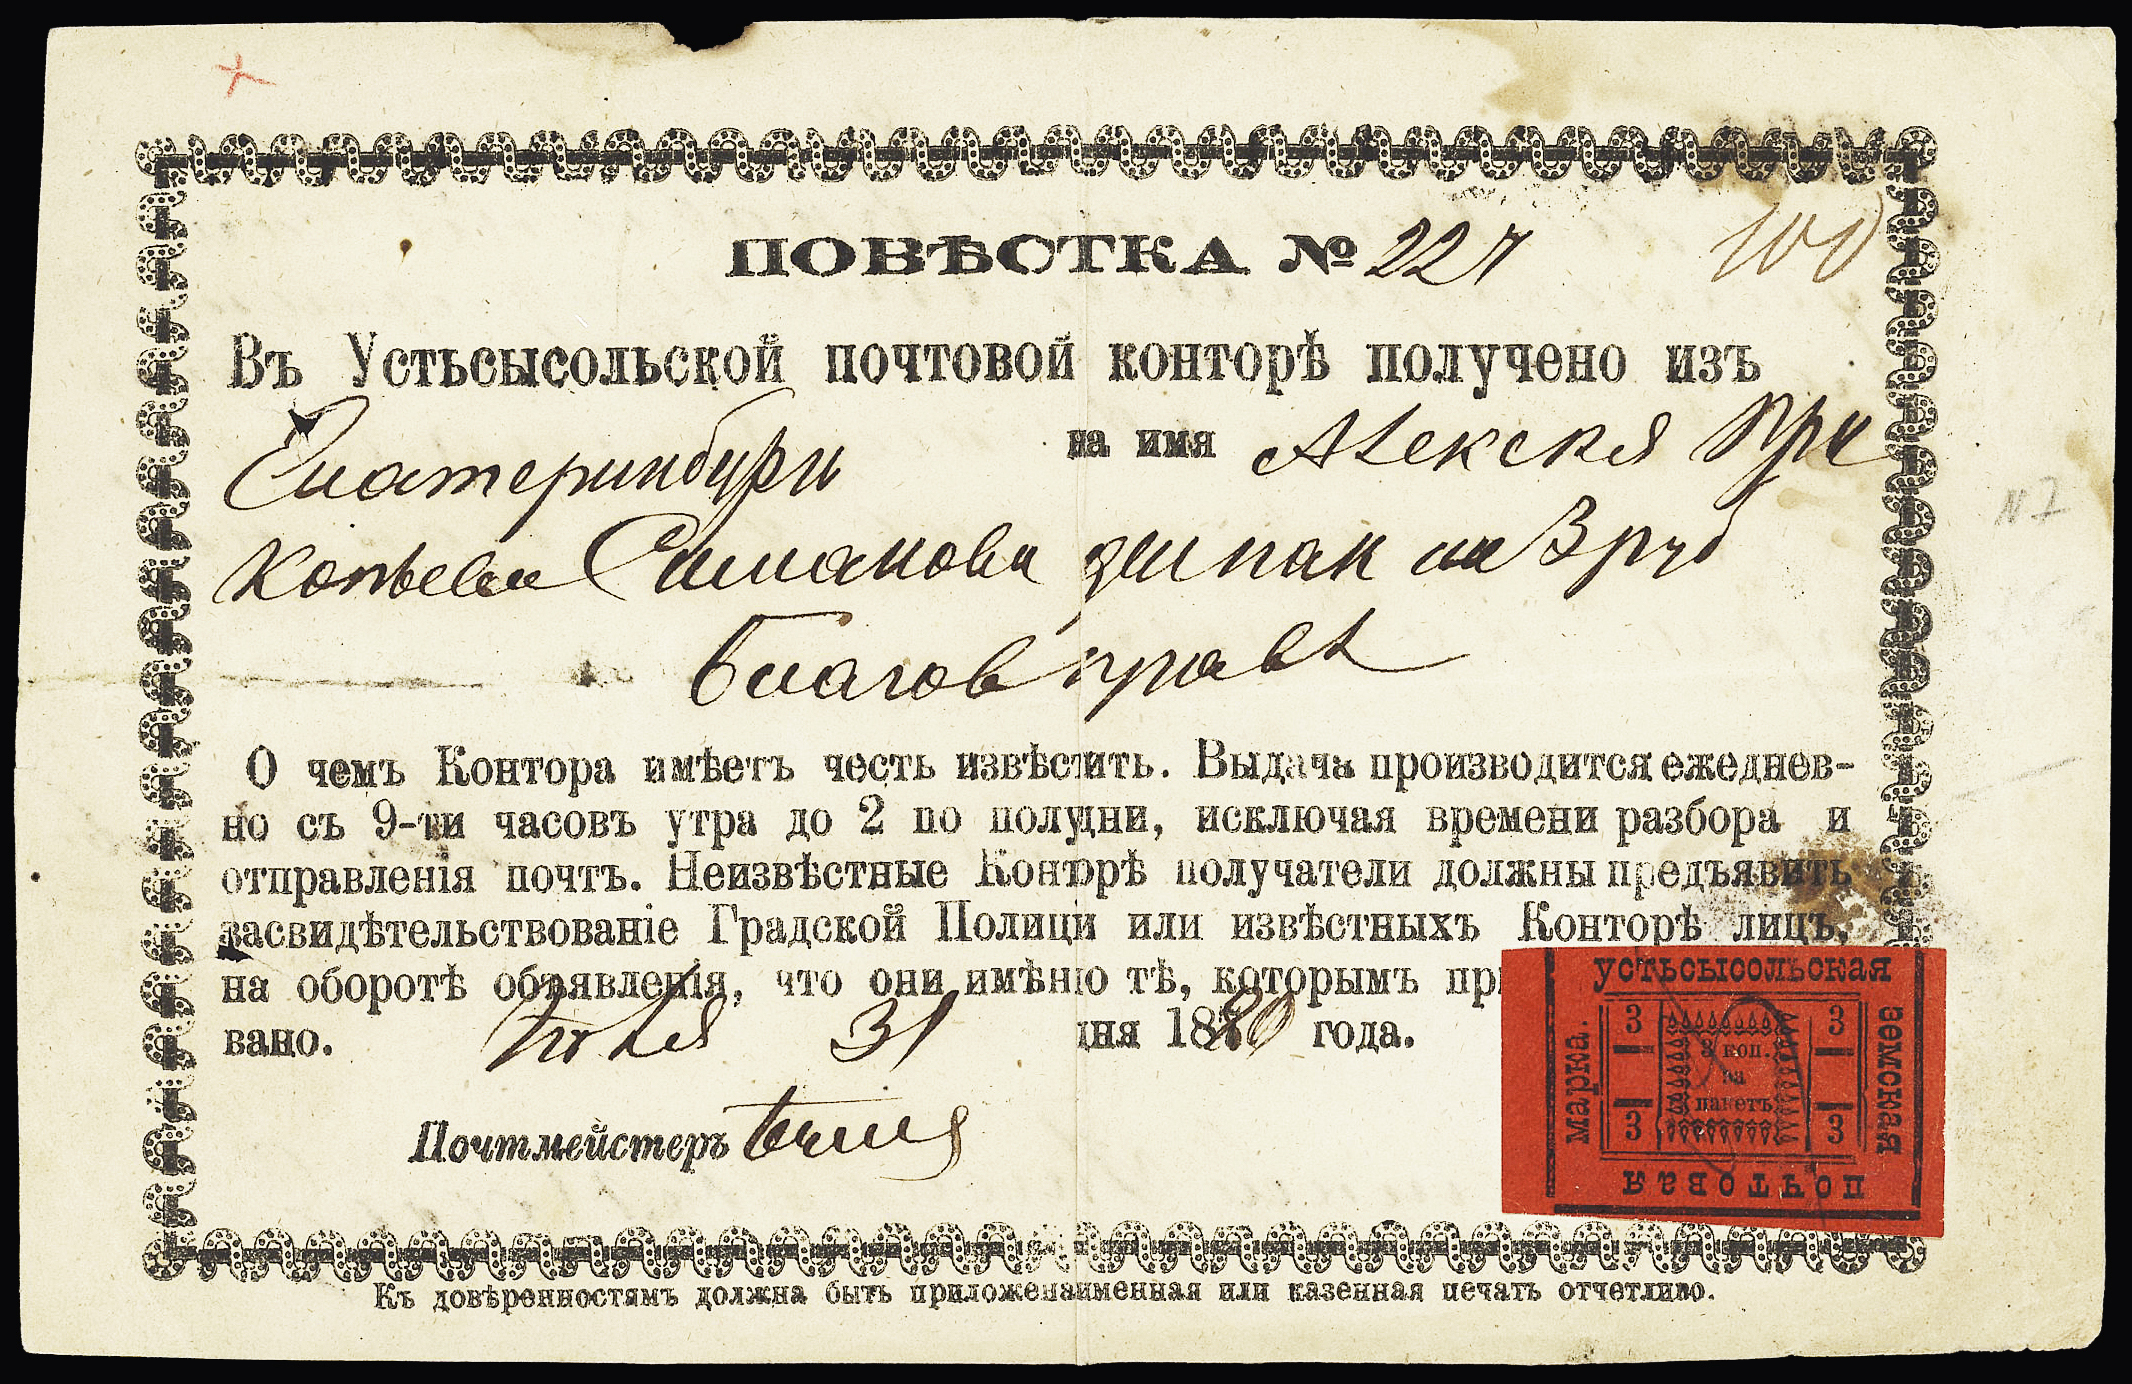 Lot 579 - Eastern Europe » RUSSIA - ZEMSTVOS » Ustsysolsk (Vologda Government)  -  Le Timbre Classique SA SALE ON OFFERS N ° 37 PARIS